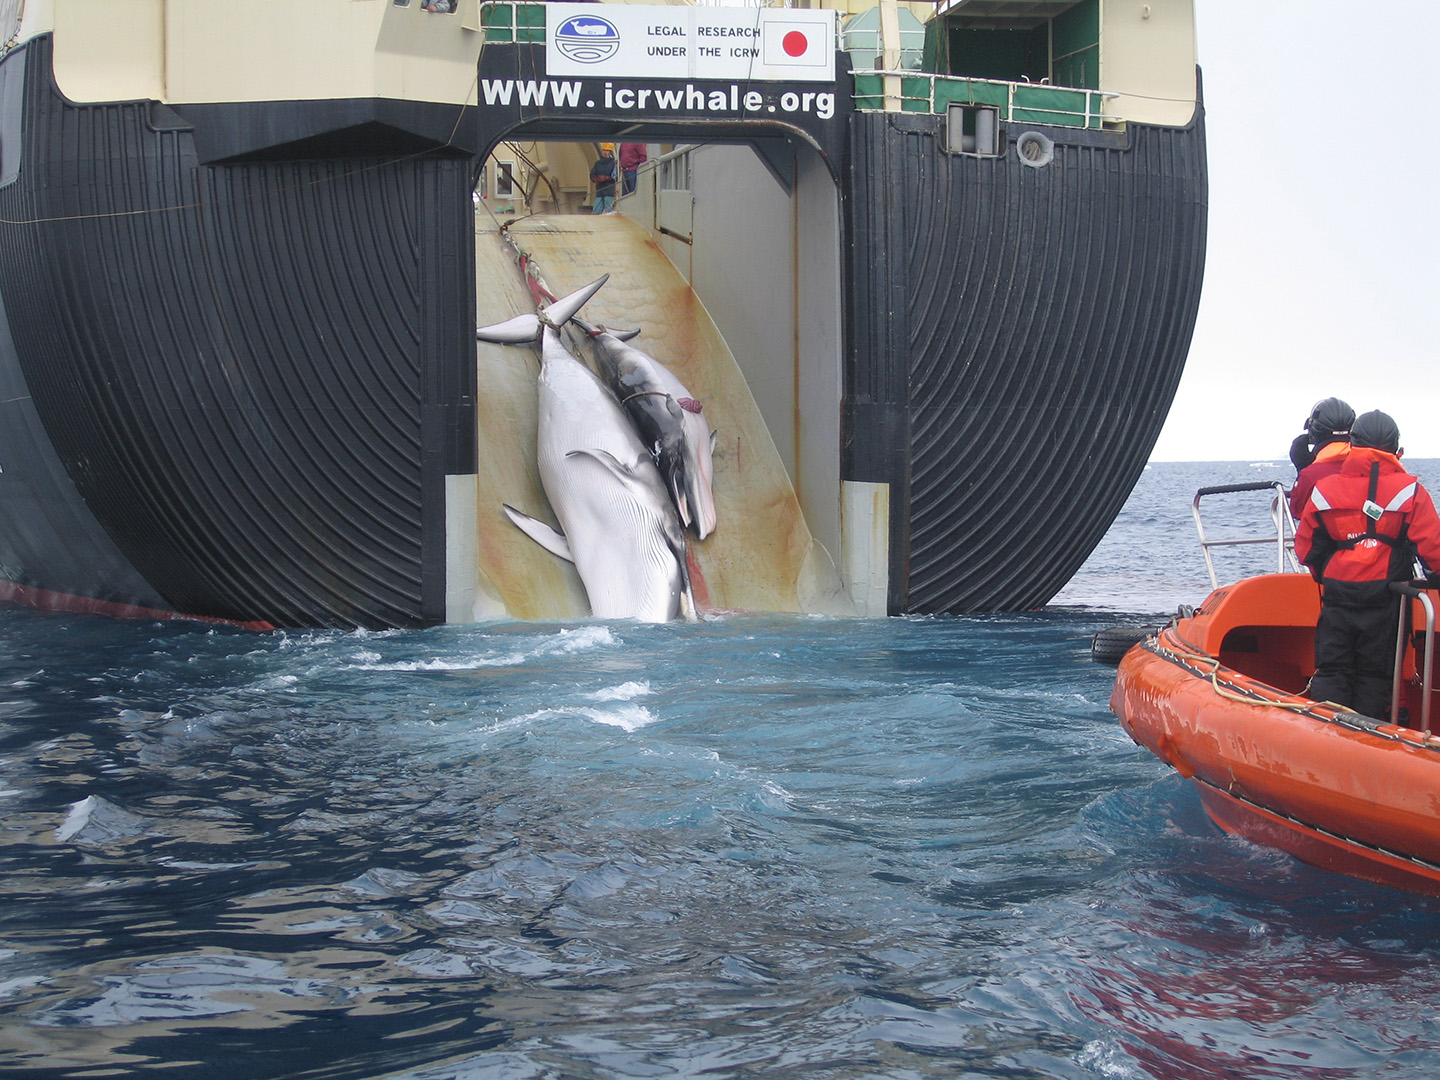 angel ugarteburu Japan Factory Ship Nisshin Maru Whaling Mother and Calf